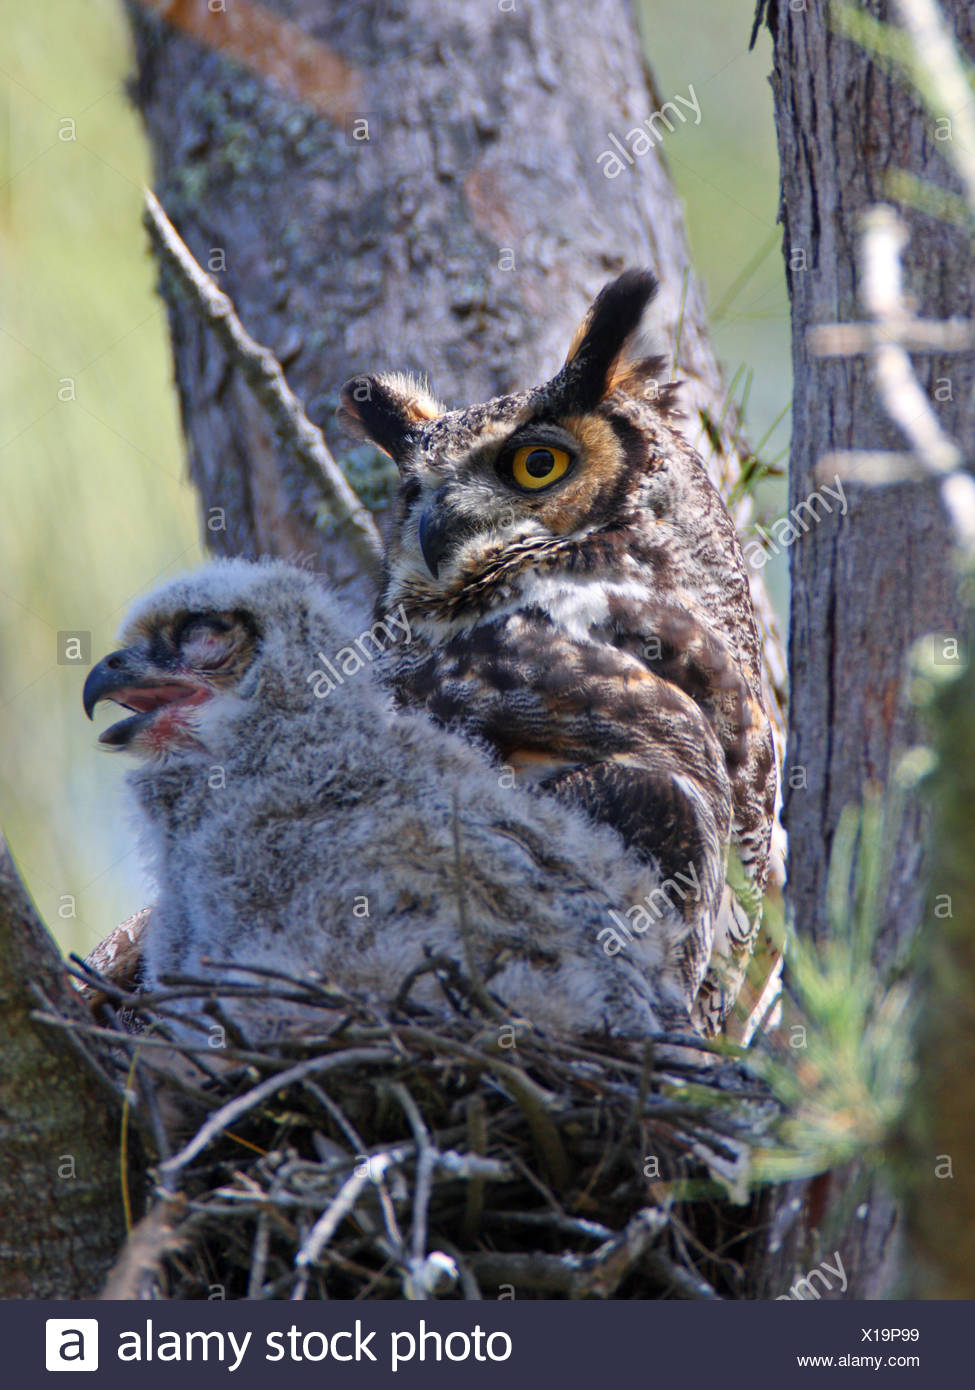 great horned owl (Bubo virginianus), female with a fledgling in the nest, USA, Florida, Everglades National Park Stock Photo